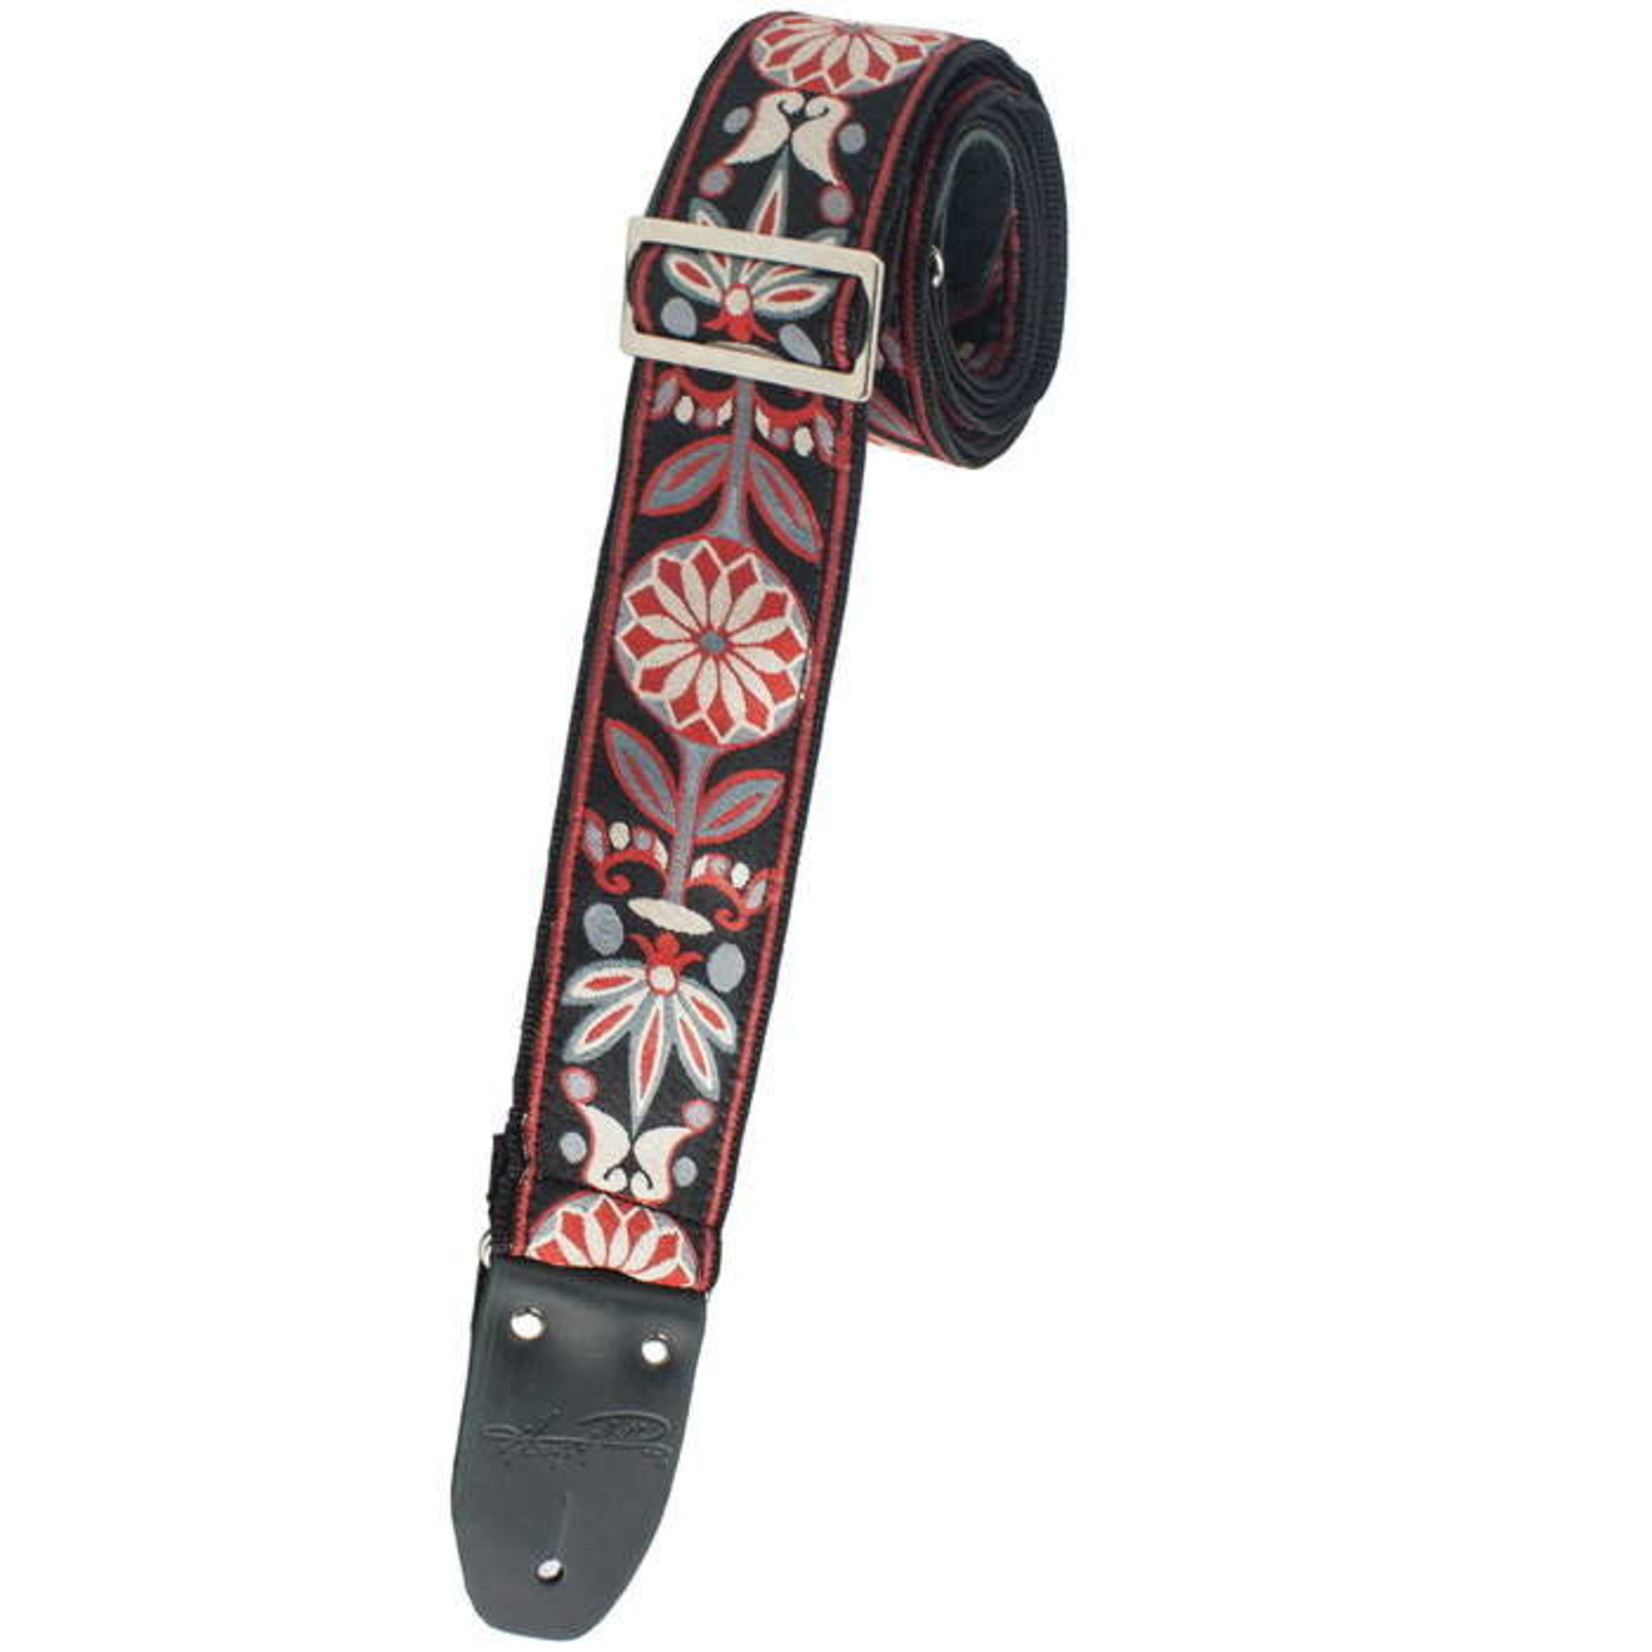 "Henry Heller Henry Heller 2"" Woven Jacquard Strap with Tri Glide and Nylon Backing, Red/Black/Gray  (HJQ2-39)"